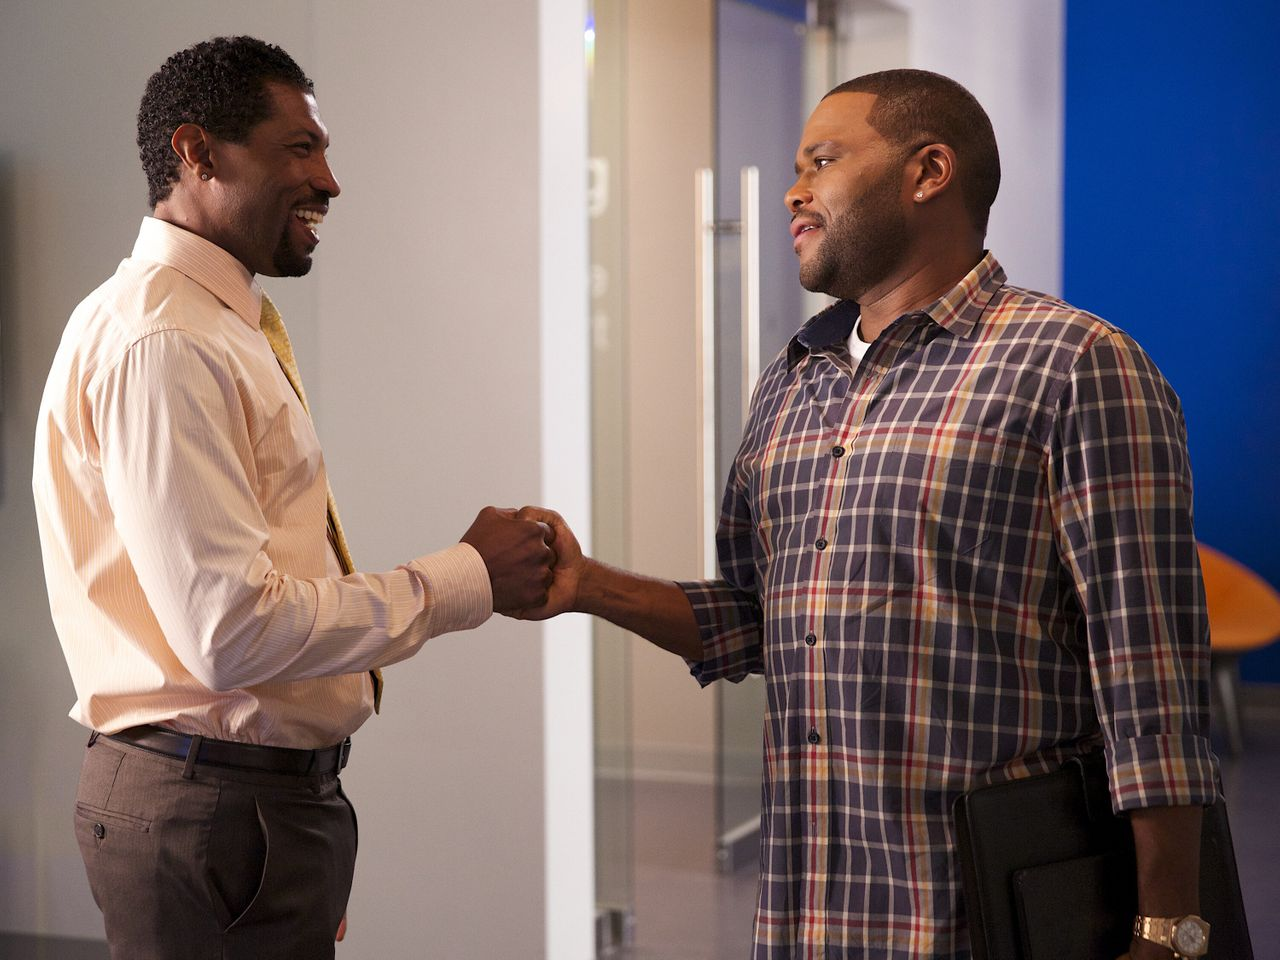 """<div class=""""feature-caption""""><em>Anthony Anderson, right, in episode three of """"Black-ish,"""" in which Dre sets out to expand Andre Jr.'s social circle to include more black kids after he discovers Andre Jr. is clueless about """"the nod."""" (Photo by Greg Gayne/ABC via Getty Images)</em></div>"""